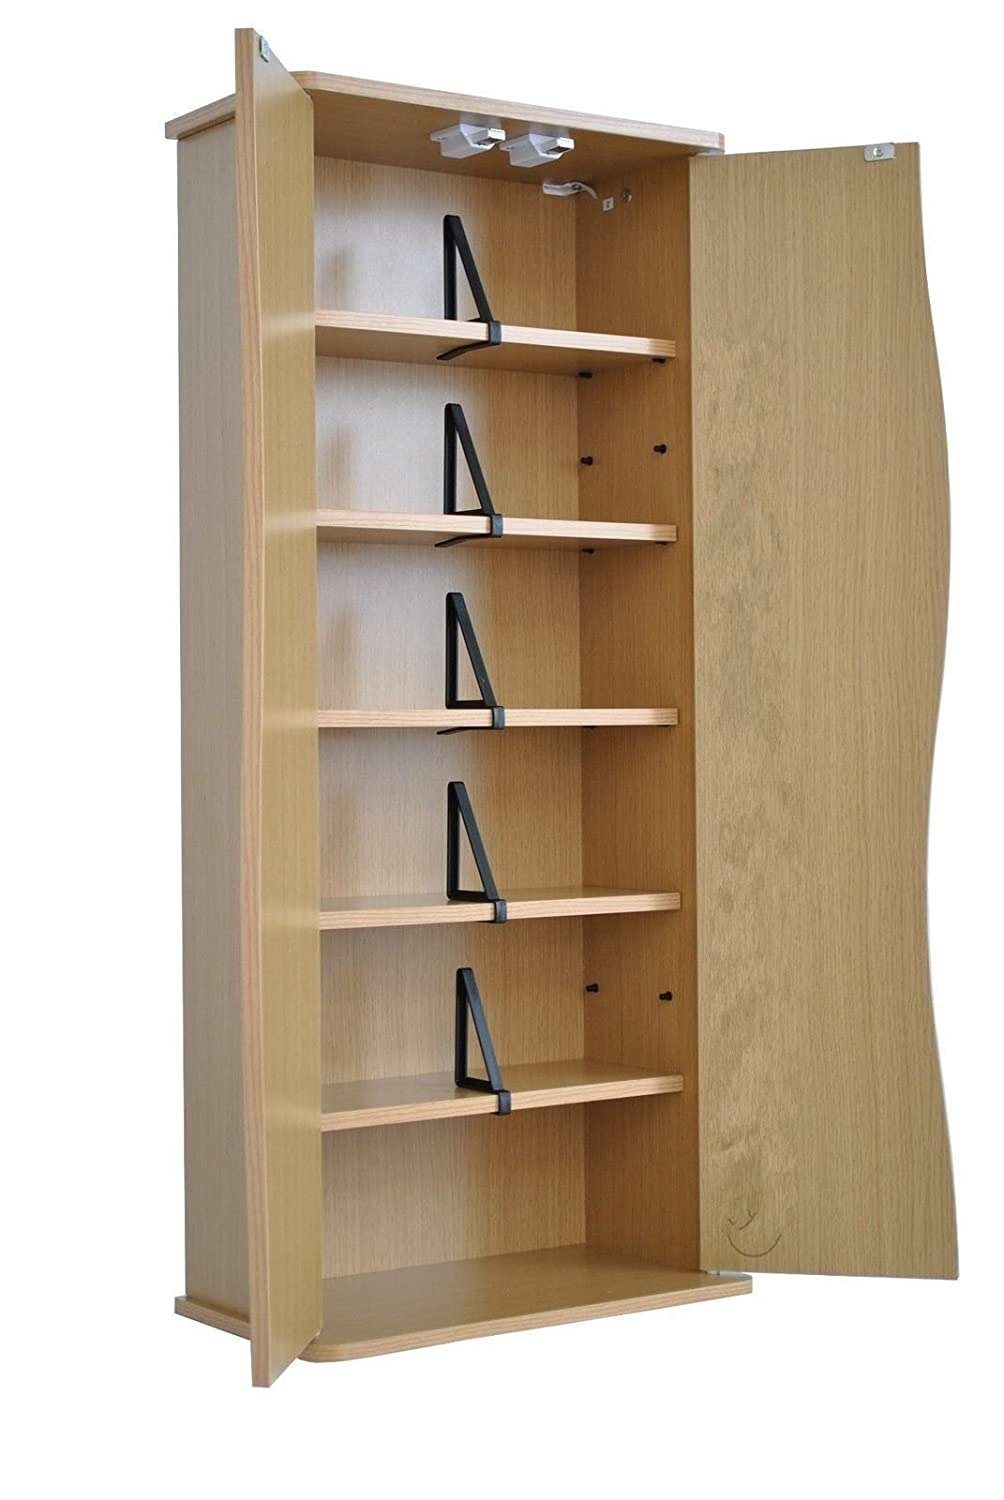 Dvd Cabinets with Doors Unique Citysales Oak Small Dvd Cd Storage Cabinet Cupboard with